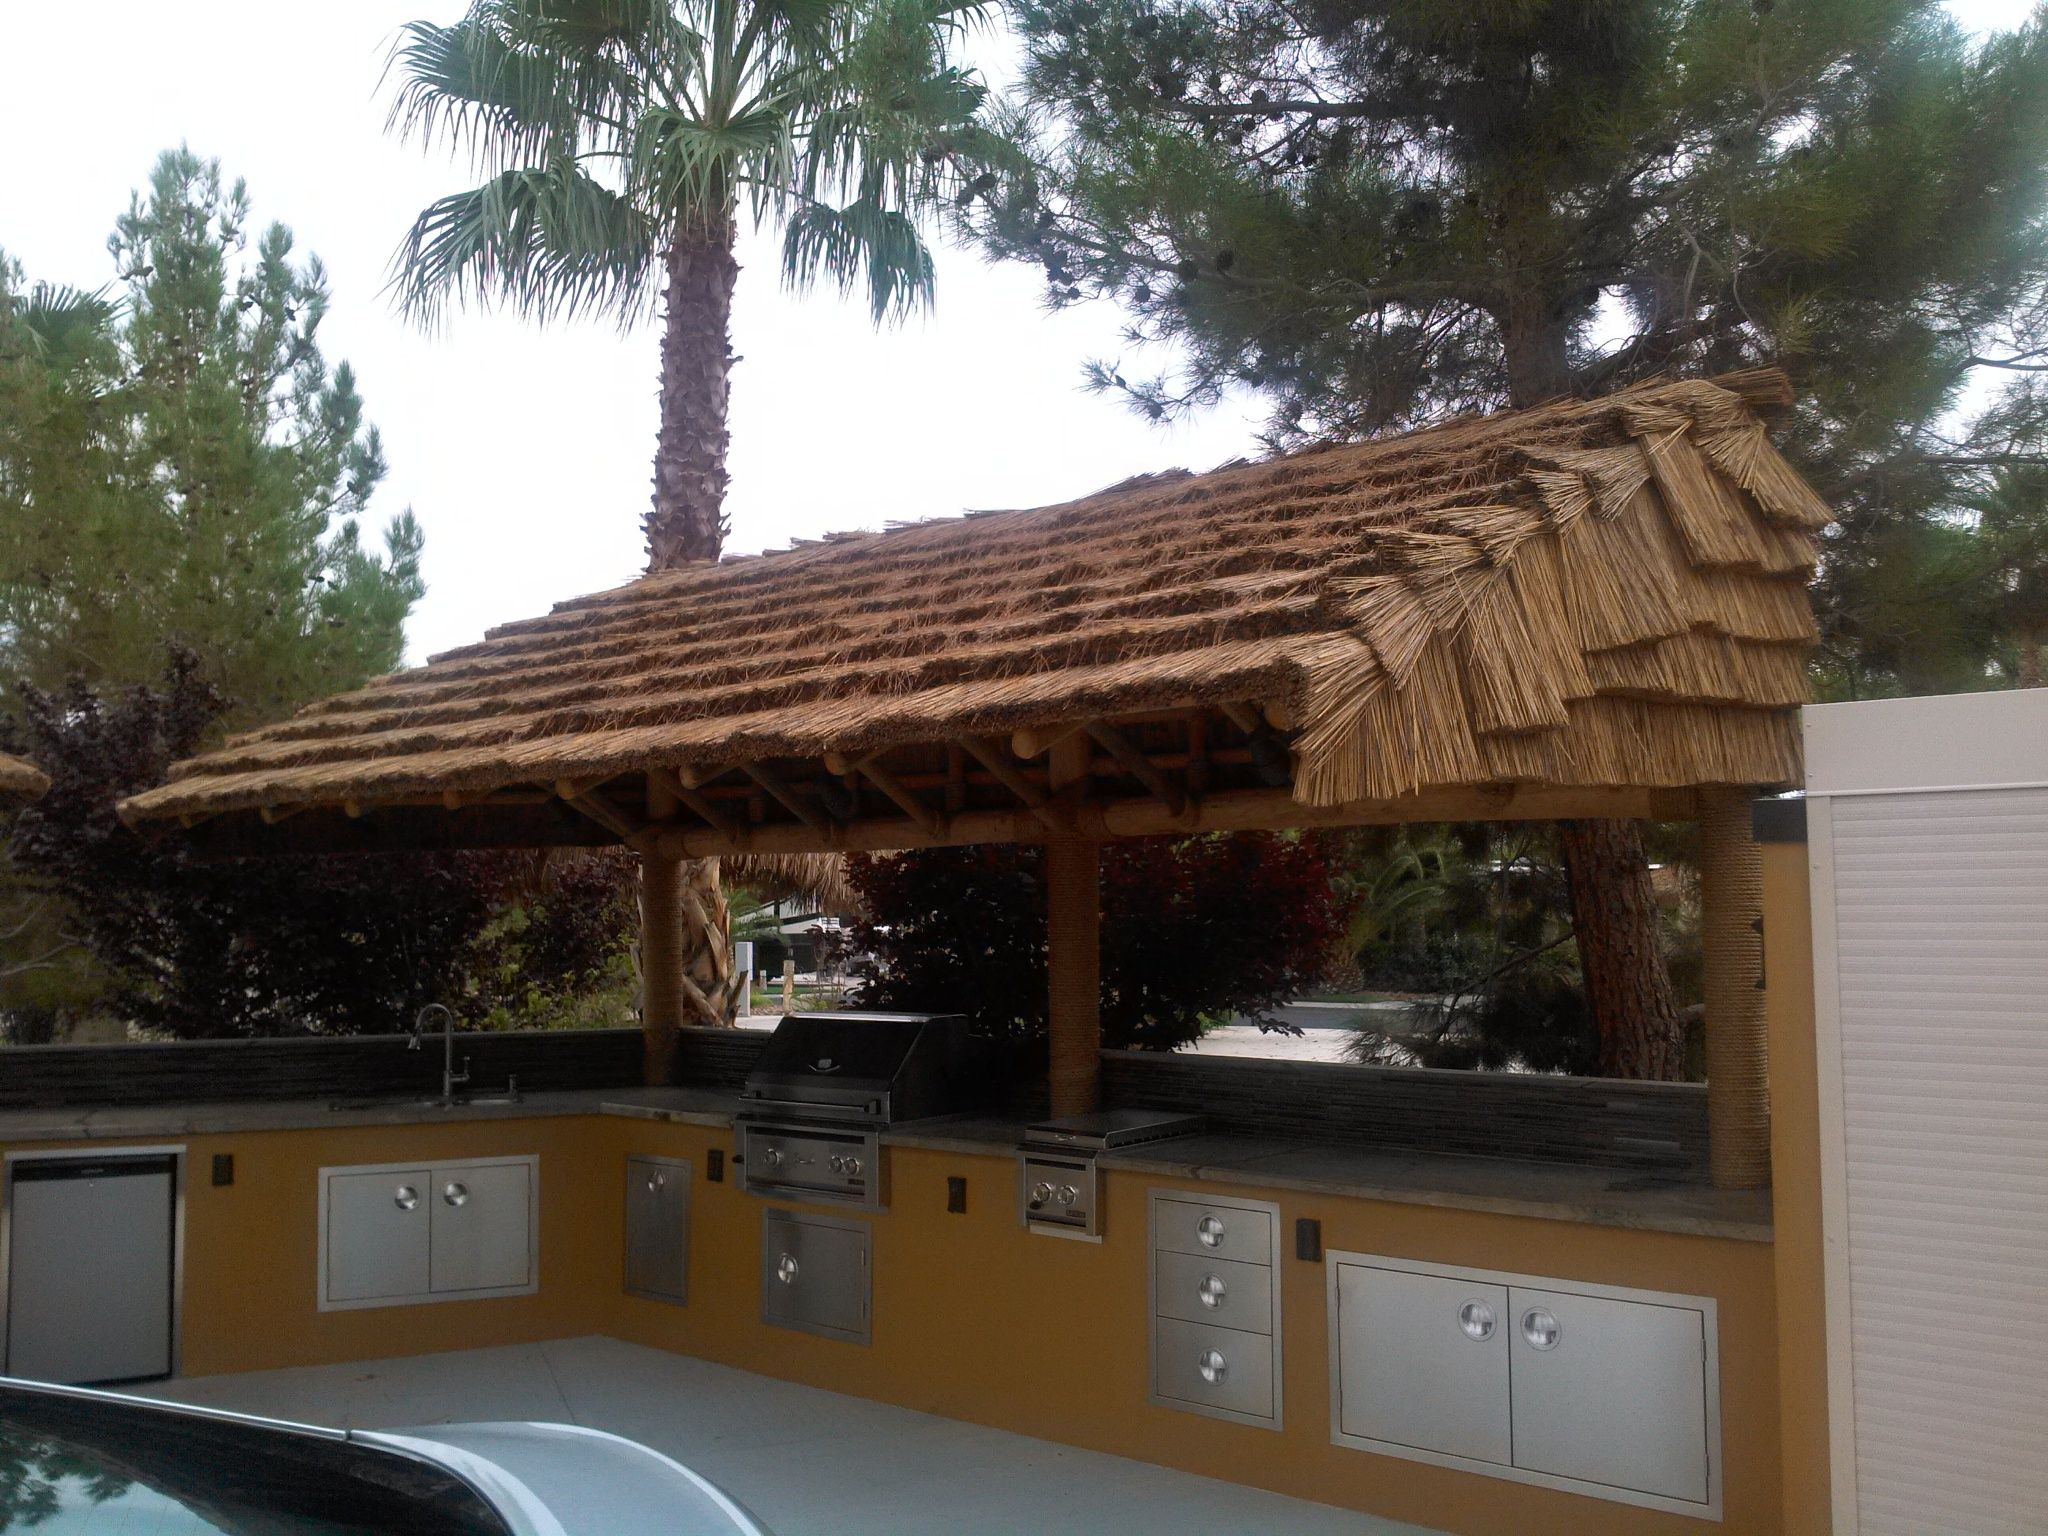 Attractive Cantilevered African Reed Palapa And Outdoor Kitchen.